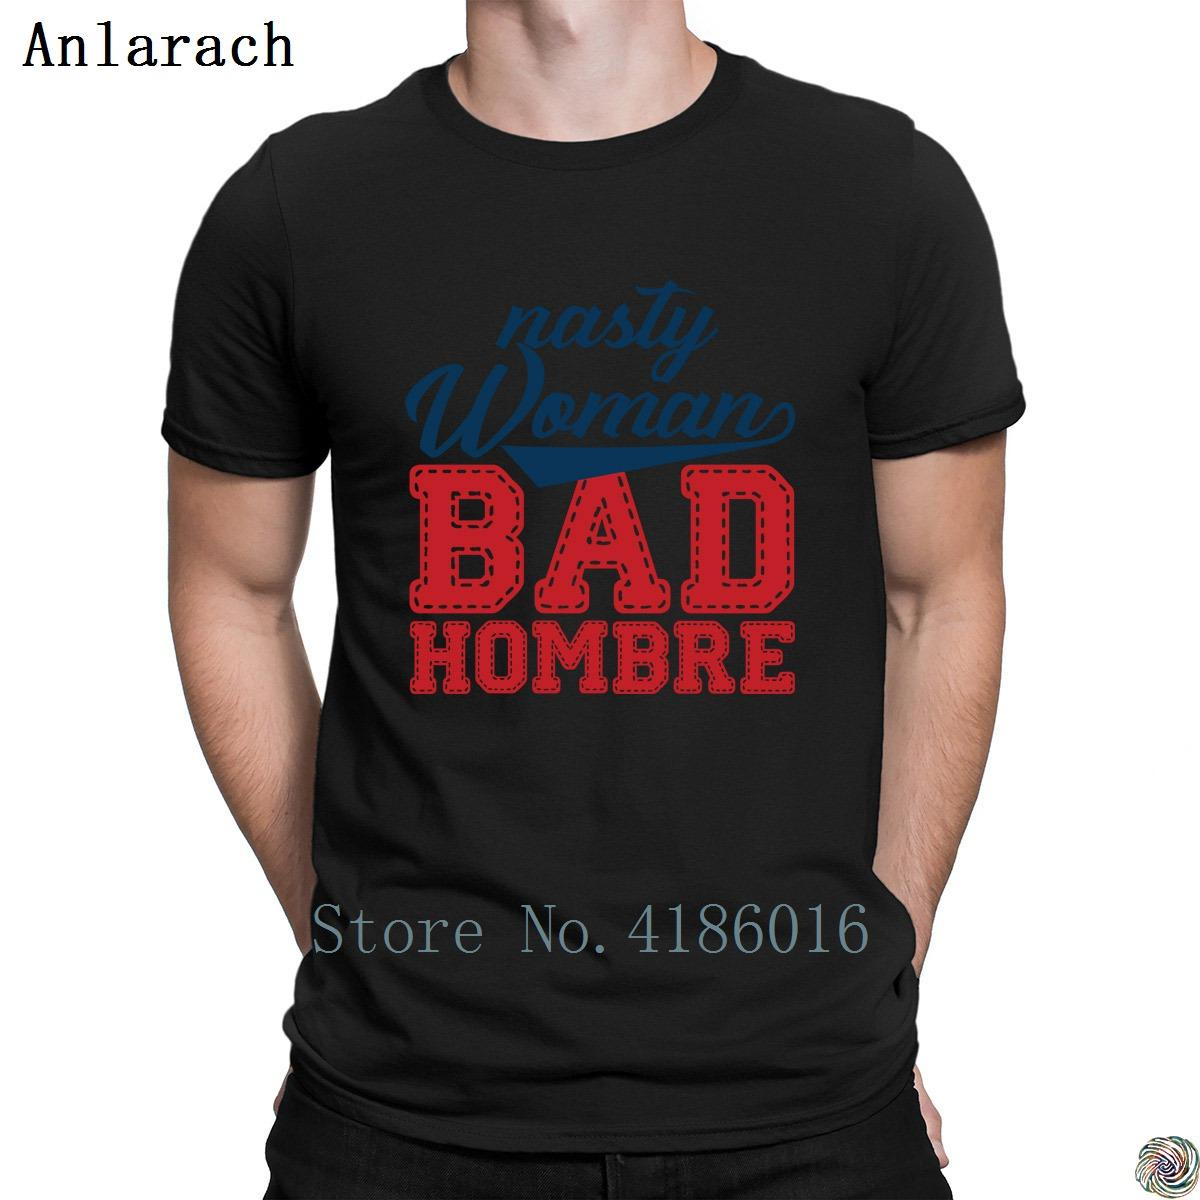 2c82c20e Nasty Woman And Bad Hombre Tshirt Pattern Humorous Clothes Spring T Shirt  For Men Tee Top Creature Better Tee Shirt 100% Cotton Shirt Tee Shirt Shirts  From ...